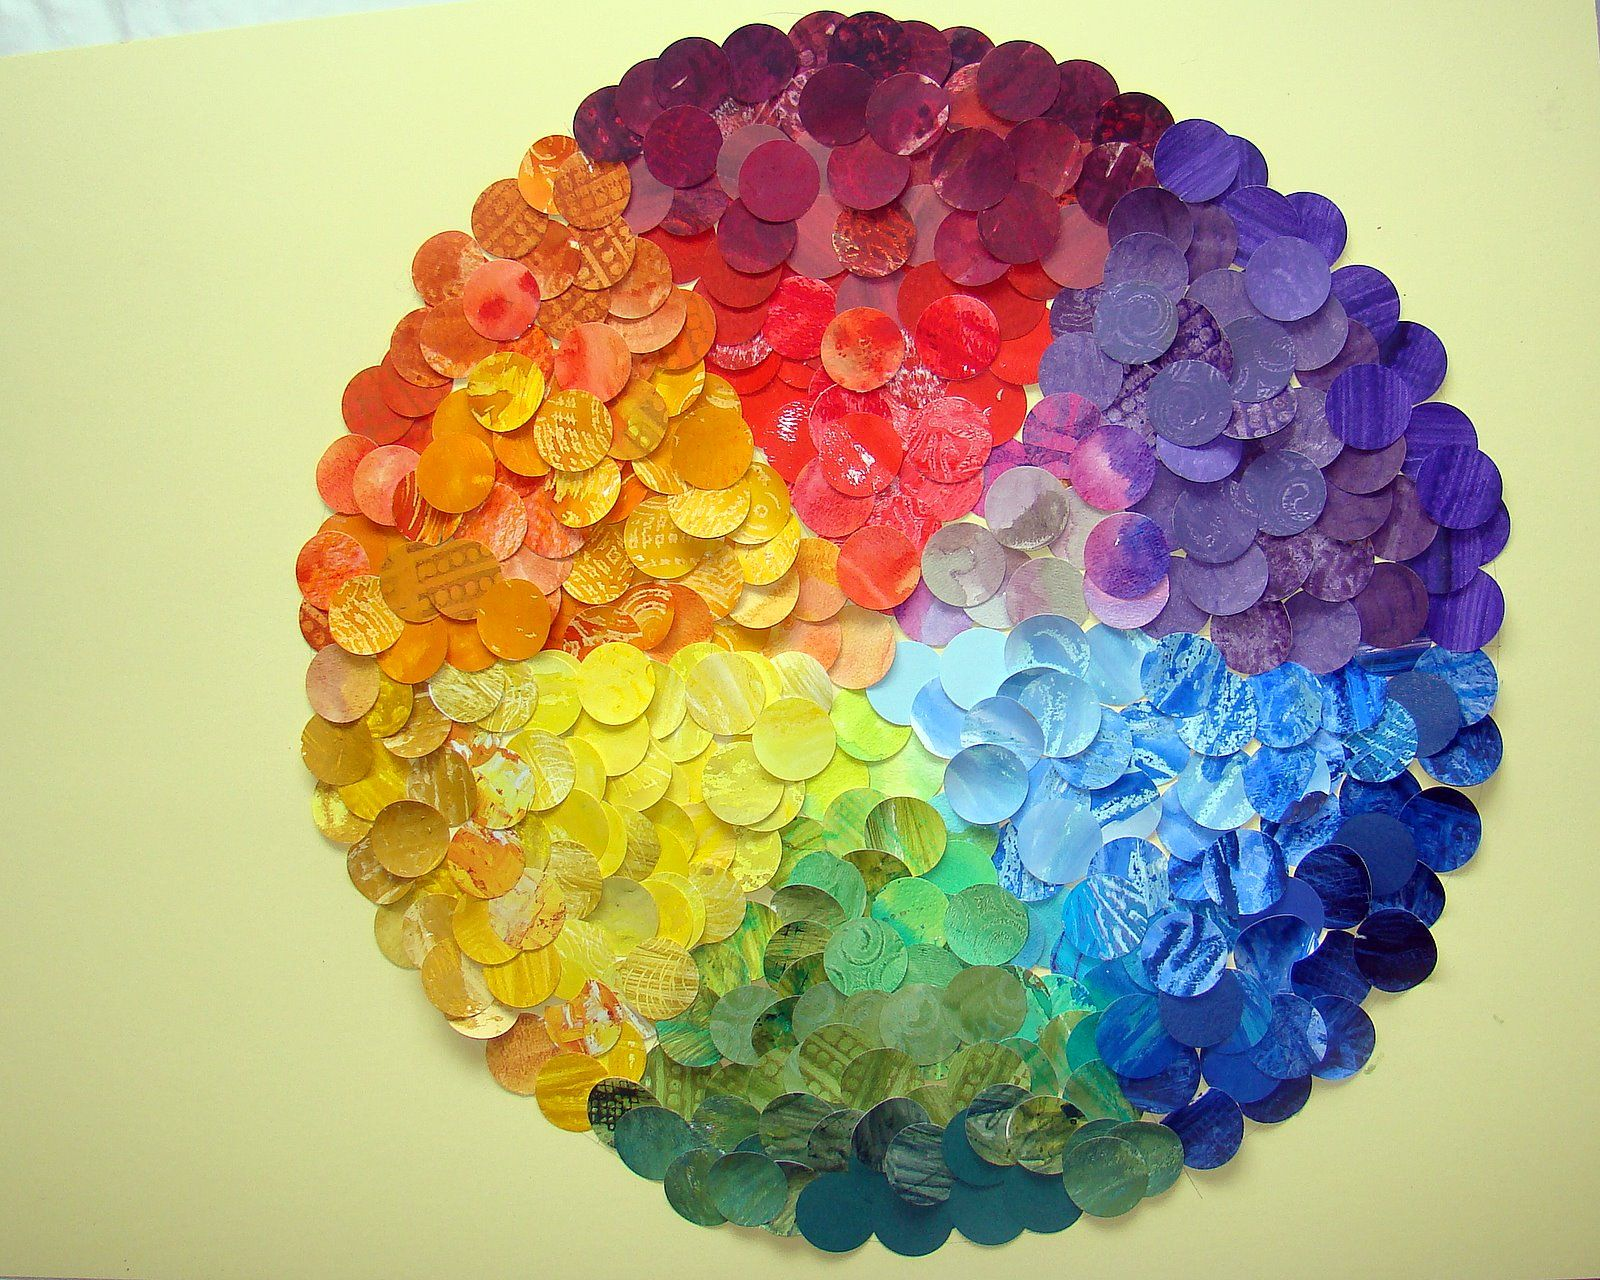 Uncategorized The Crafty Mugwump June 2011 Awesome Creative Color Wheel Interactive